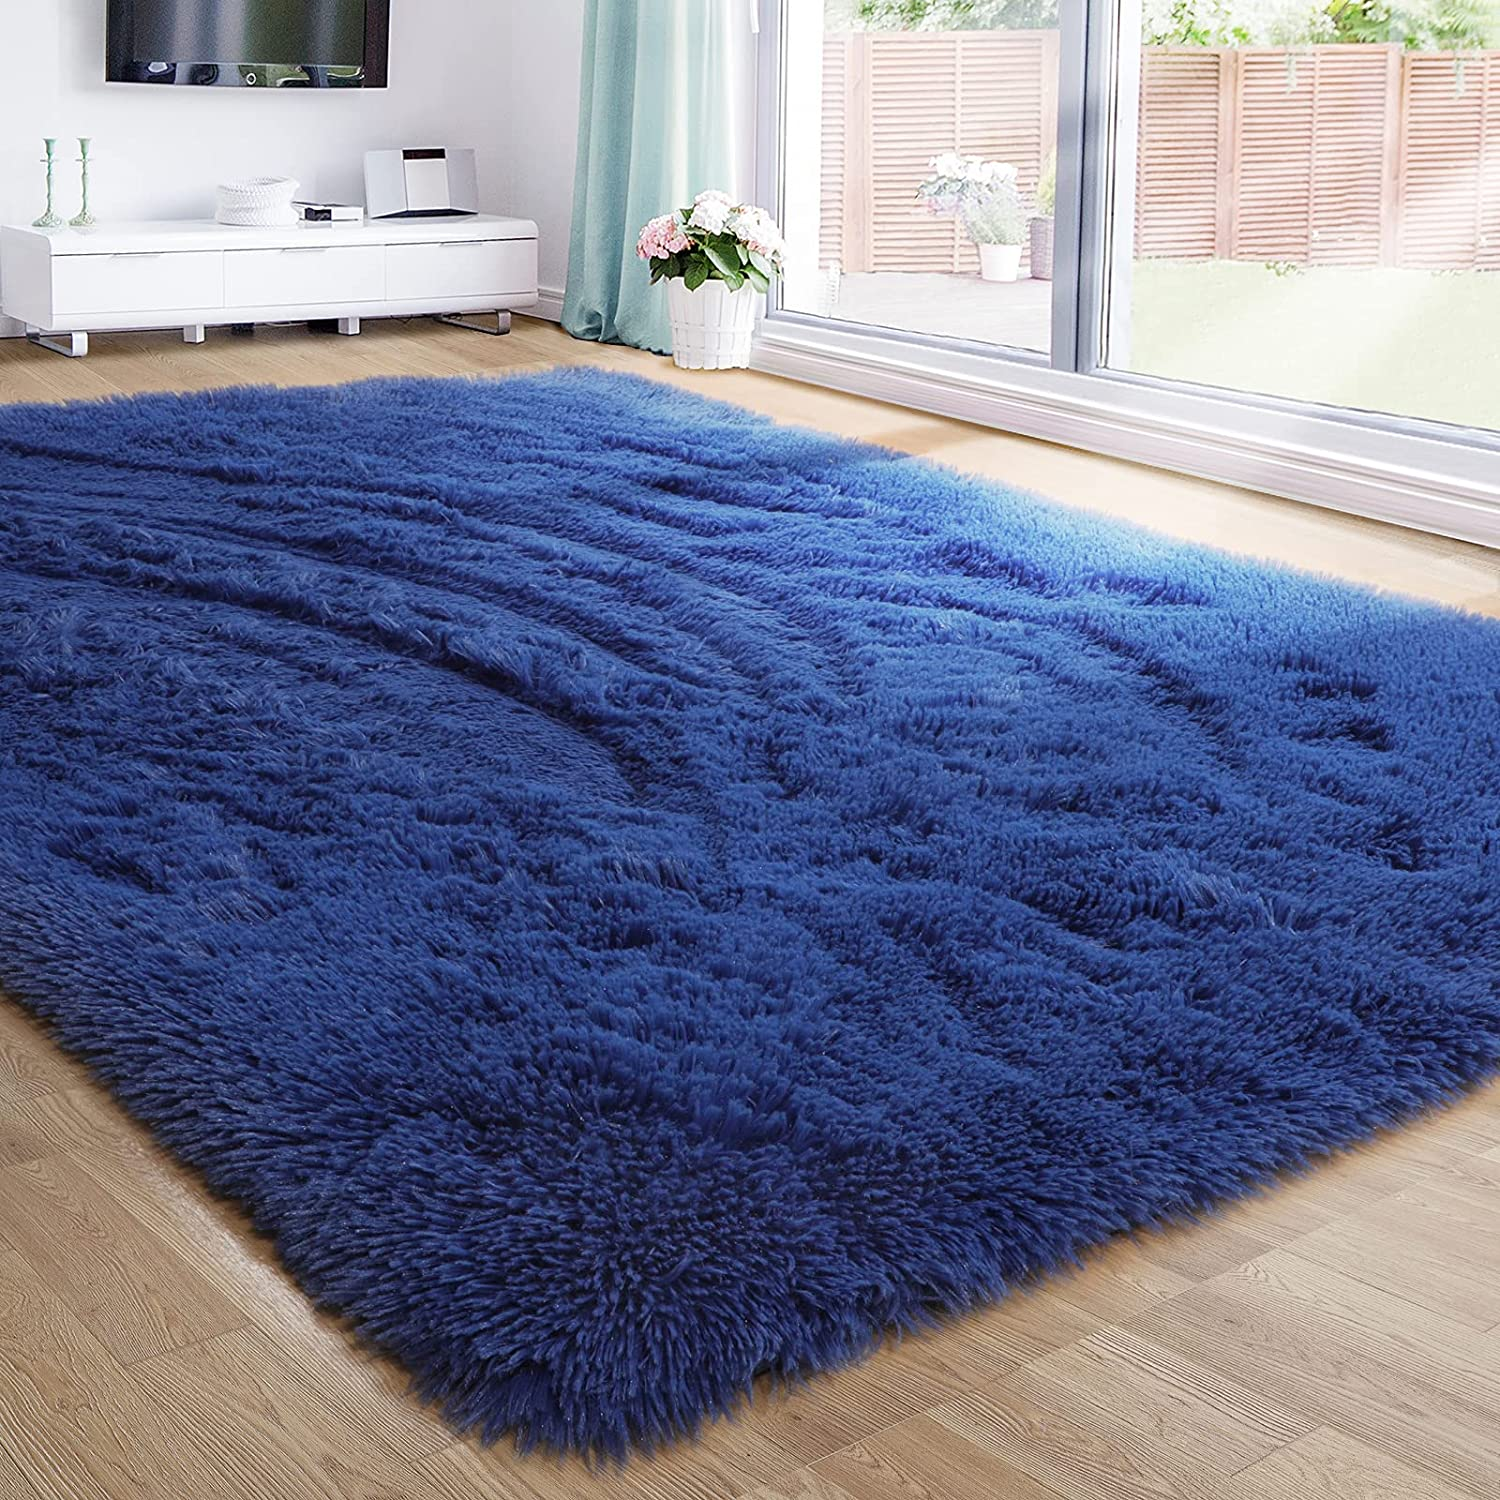 Navy Blue Fluffy Living Room Rugs, Furry Area Rug 5x8 for Bedroo